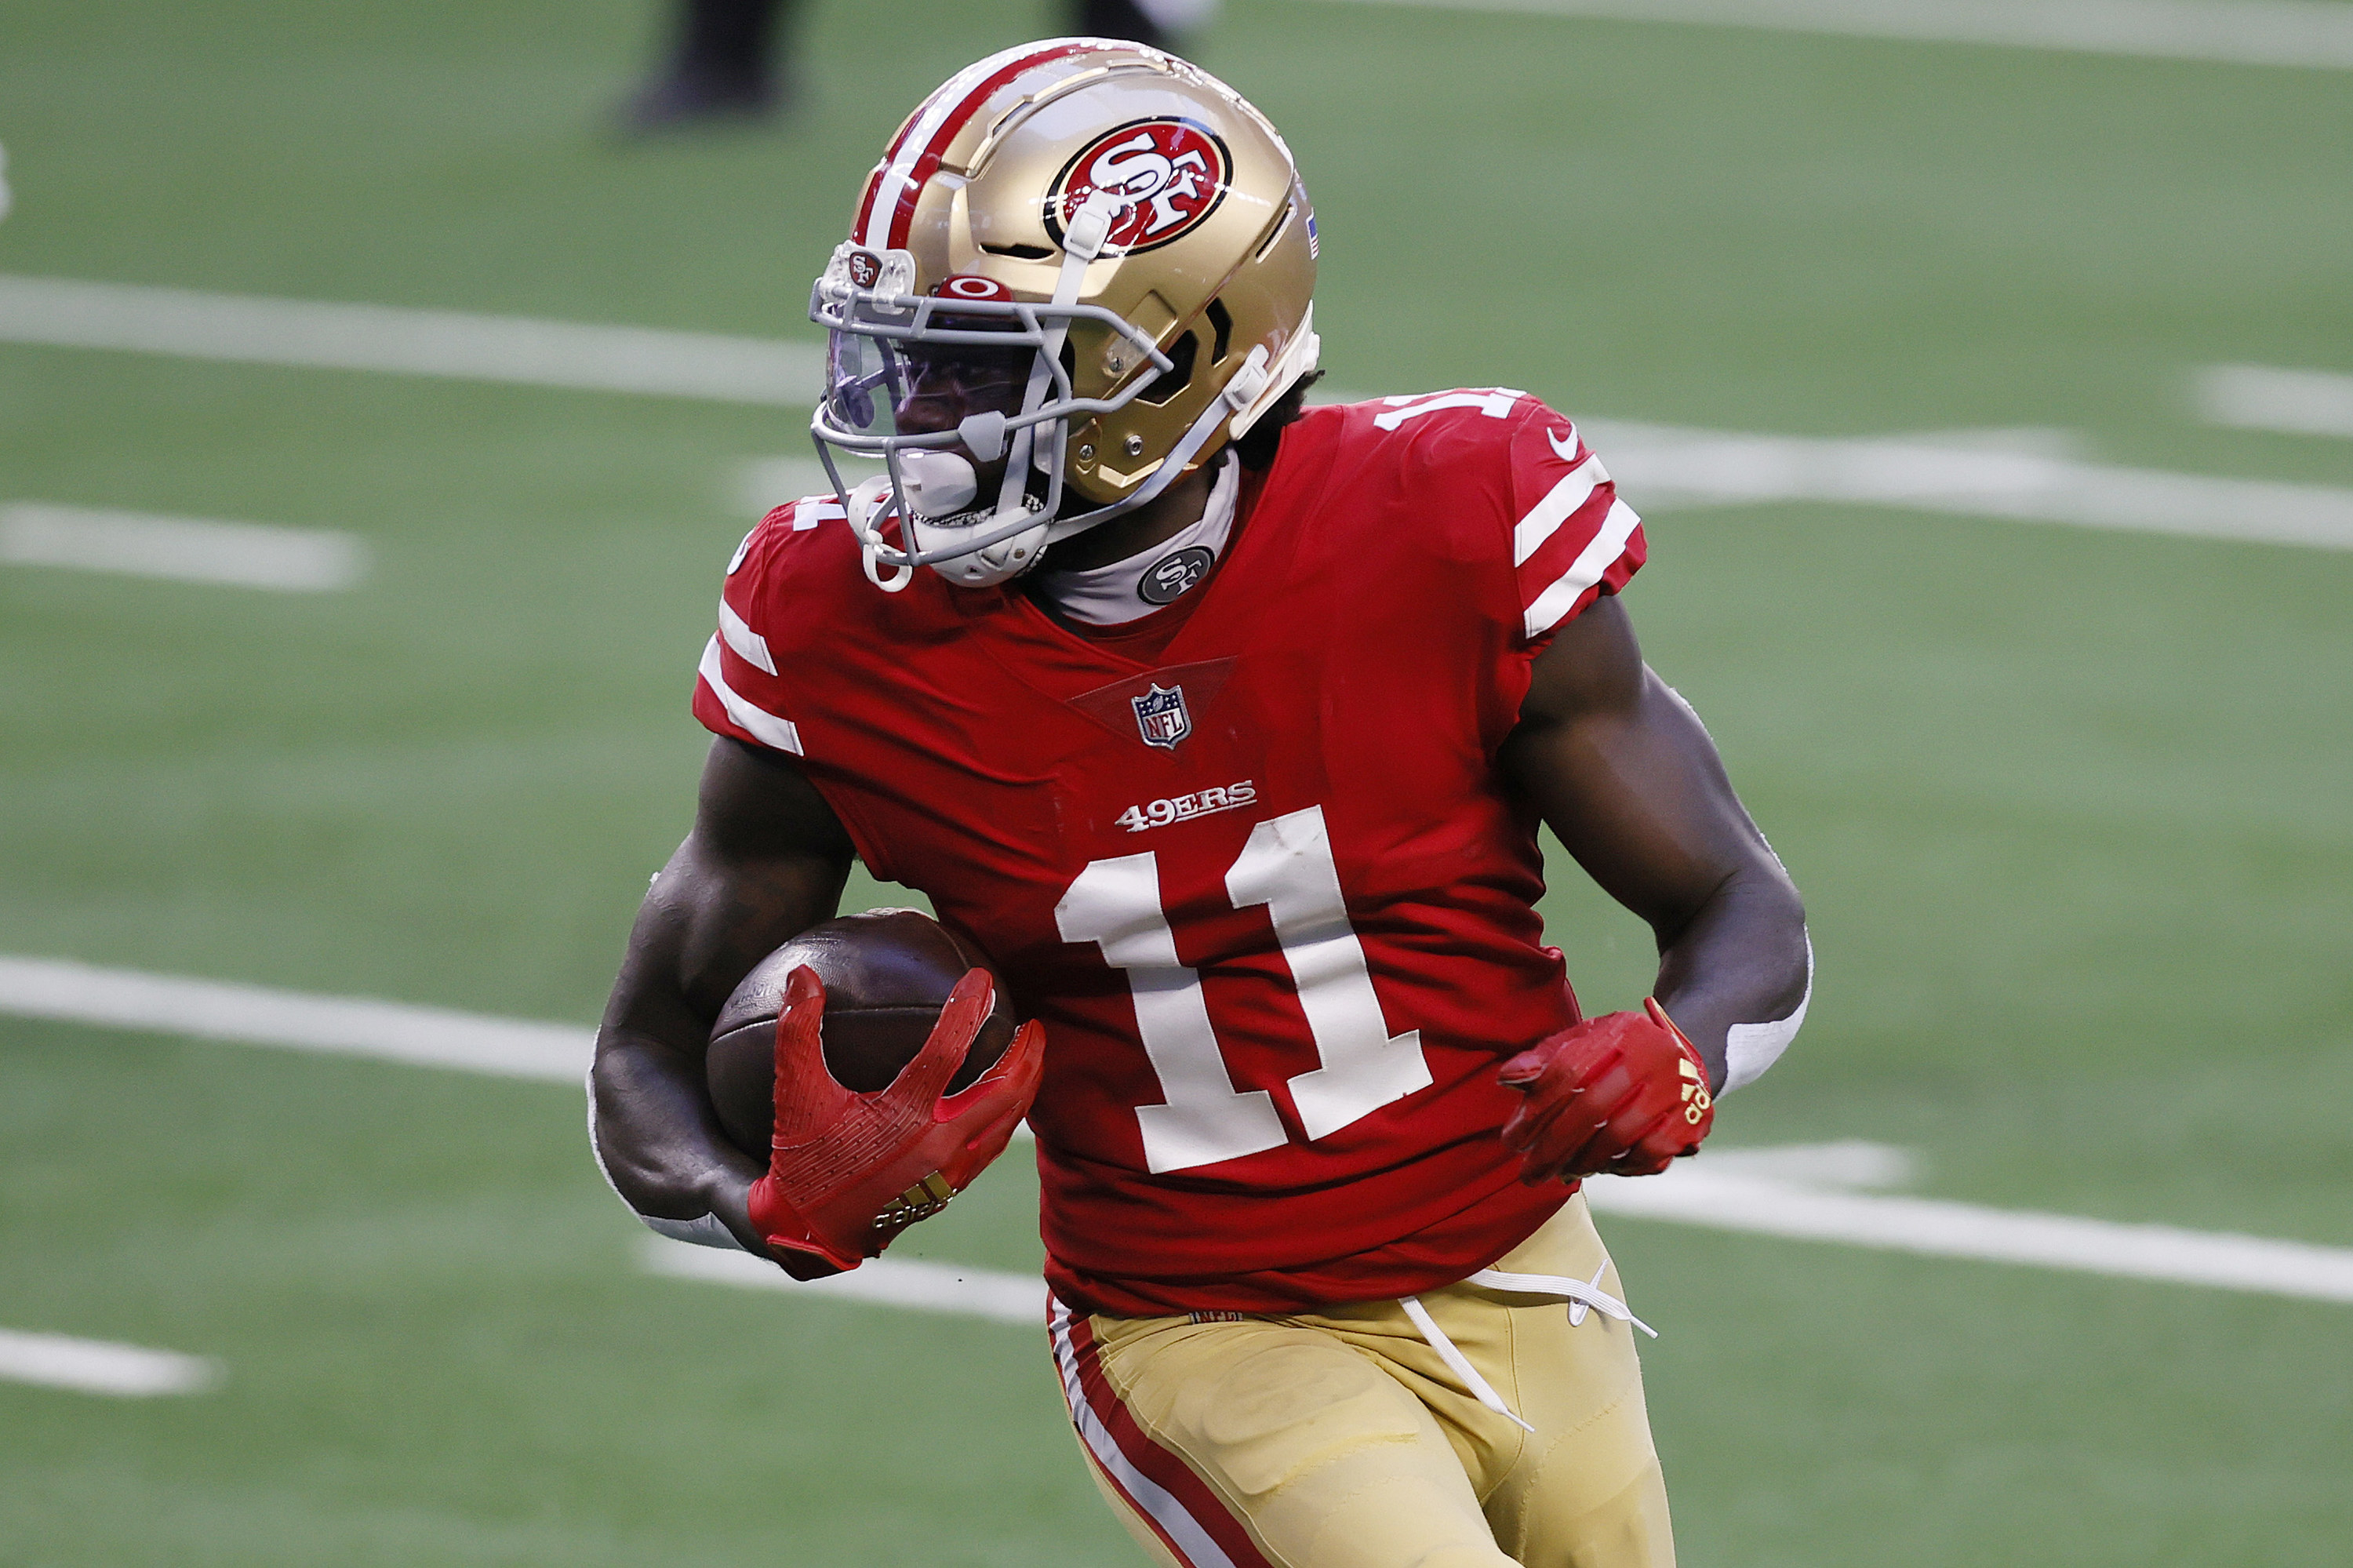 Red and bronze 49ers uniforms